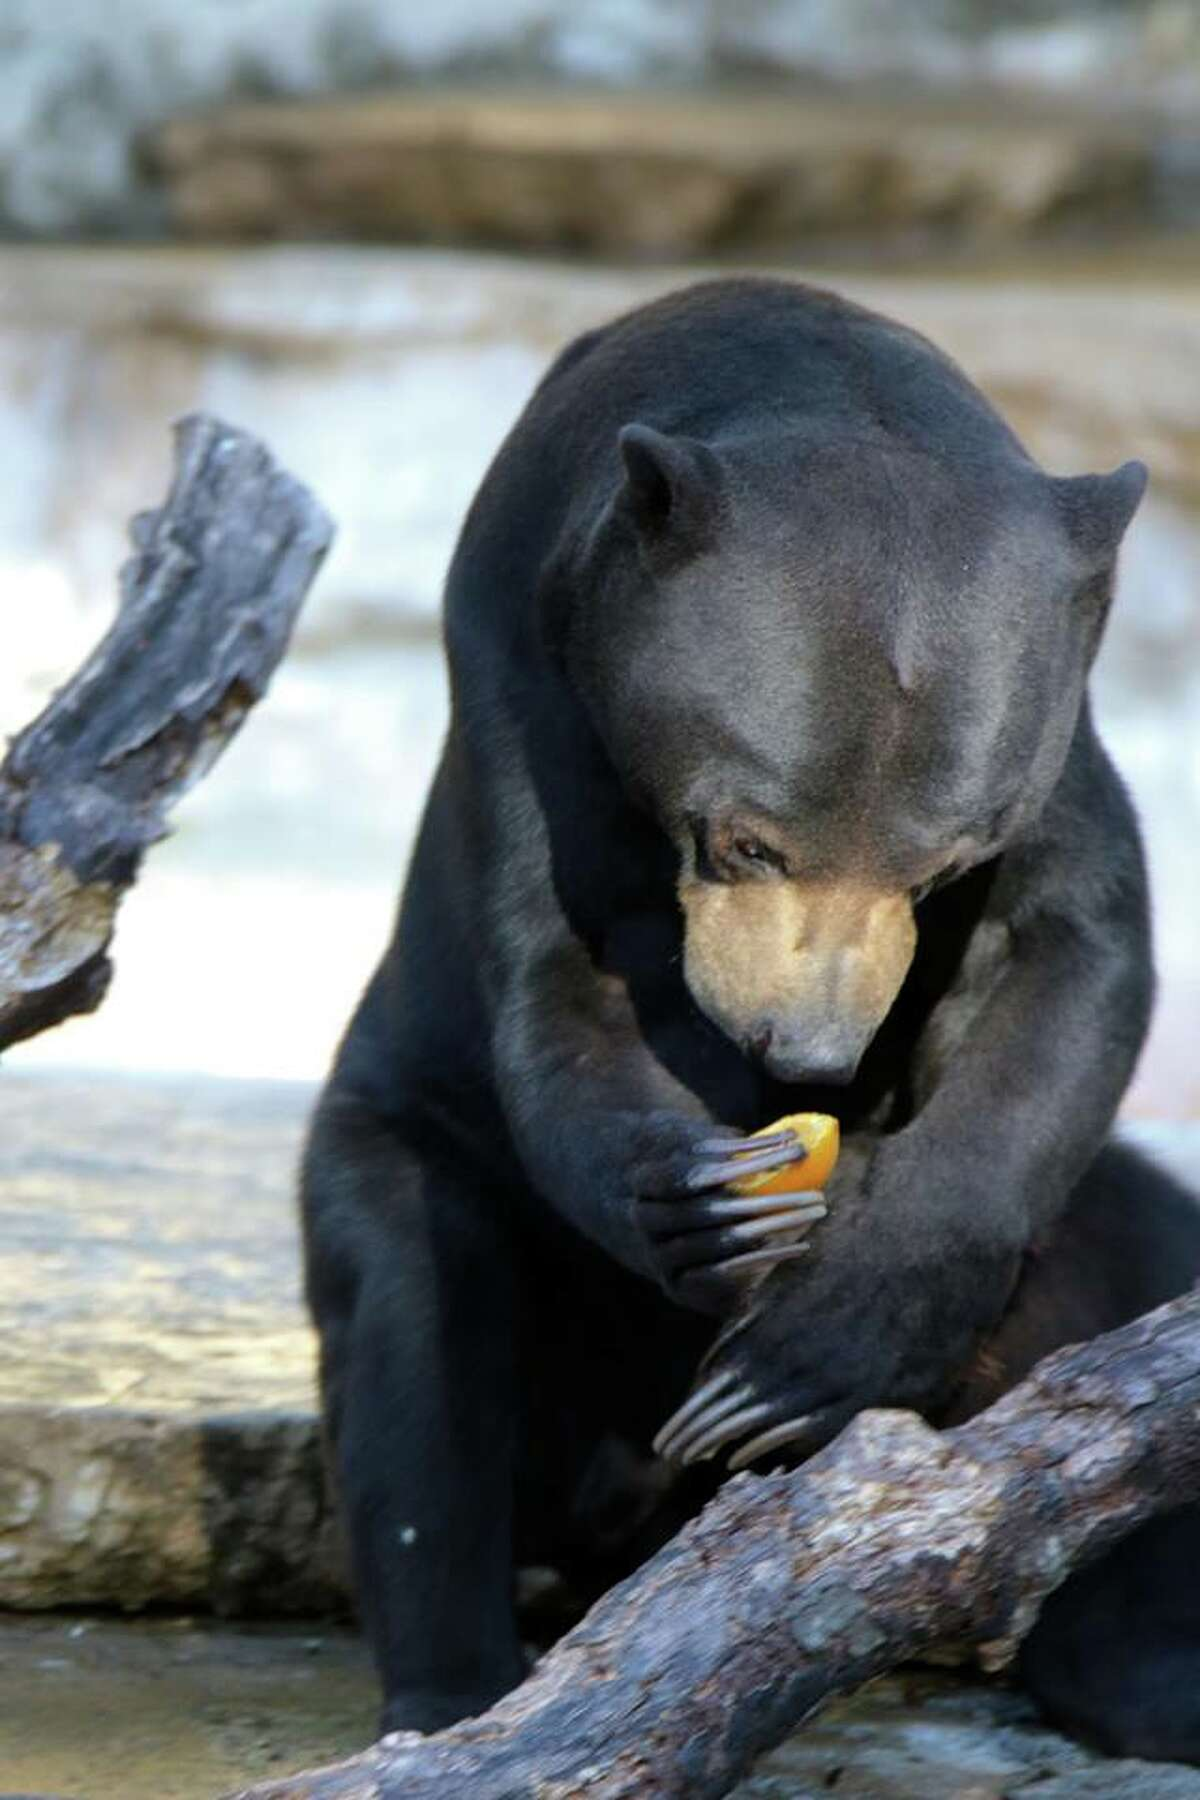 Baubles, a 14-year-old Malayan sun bear, passed away at the San Antonio Zoo March 7, 2018 after a battle with heart disease.